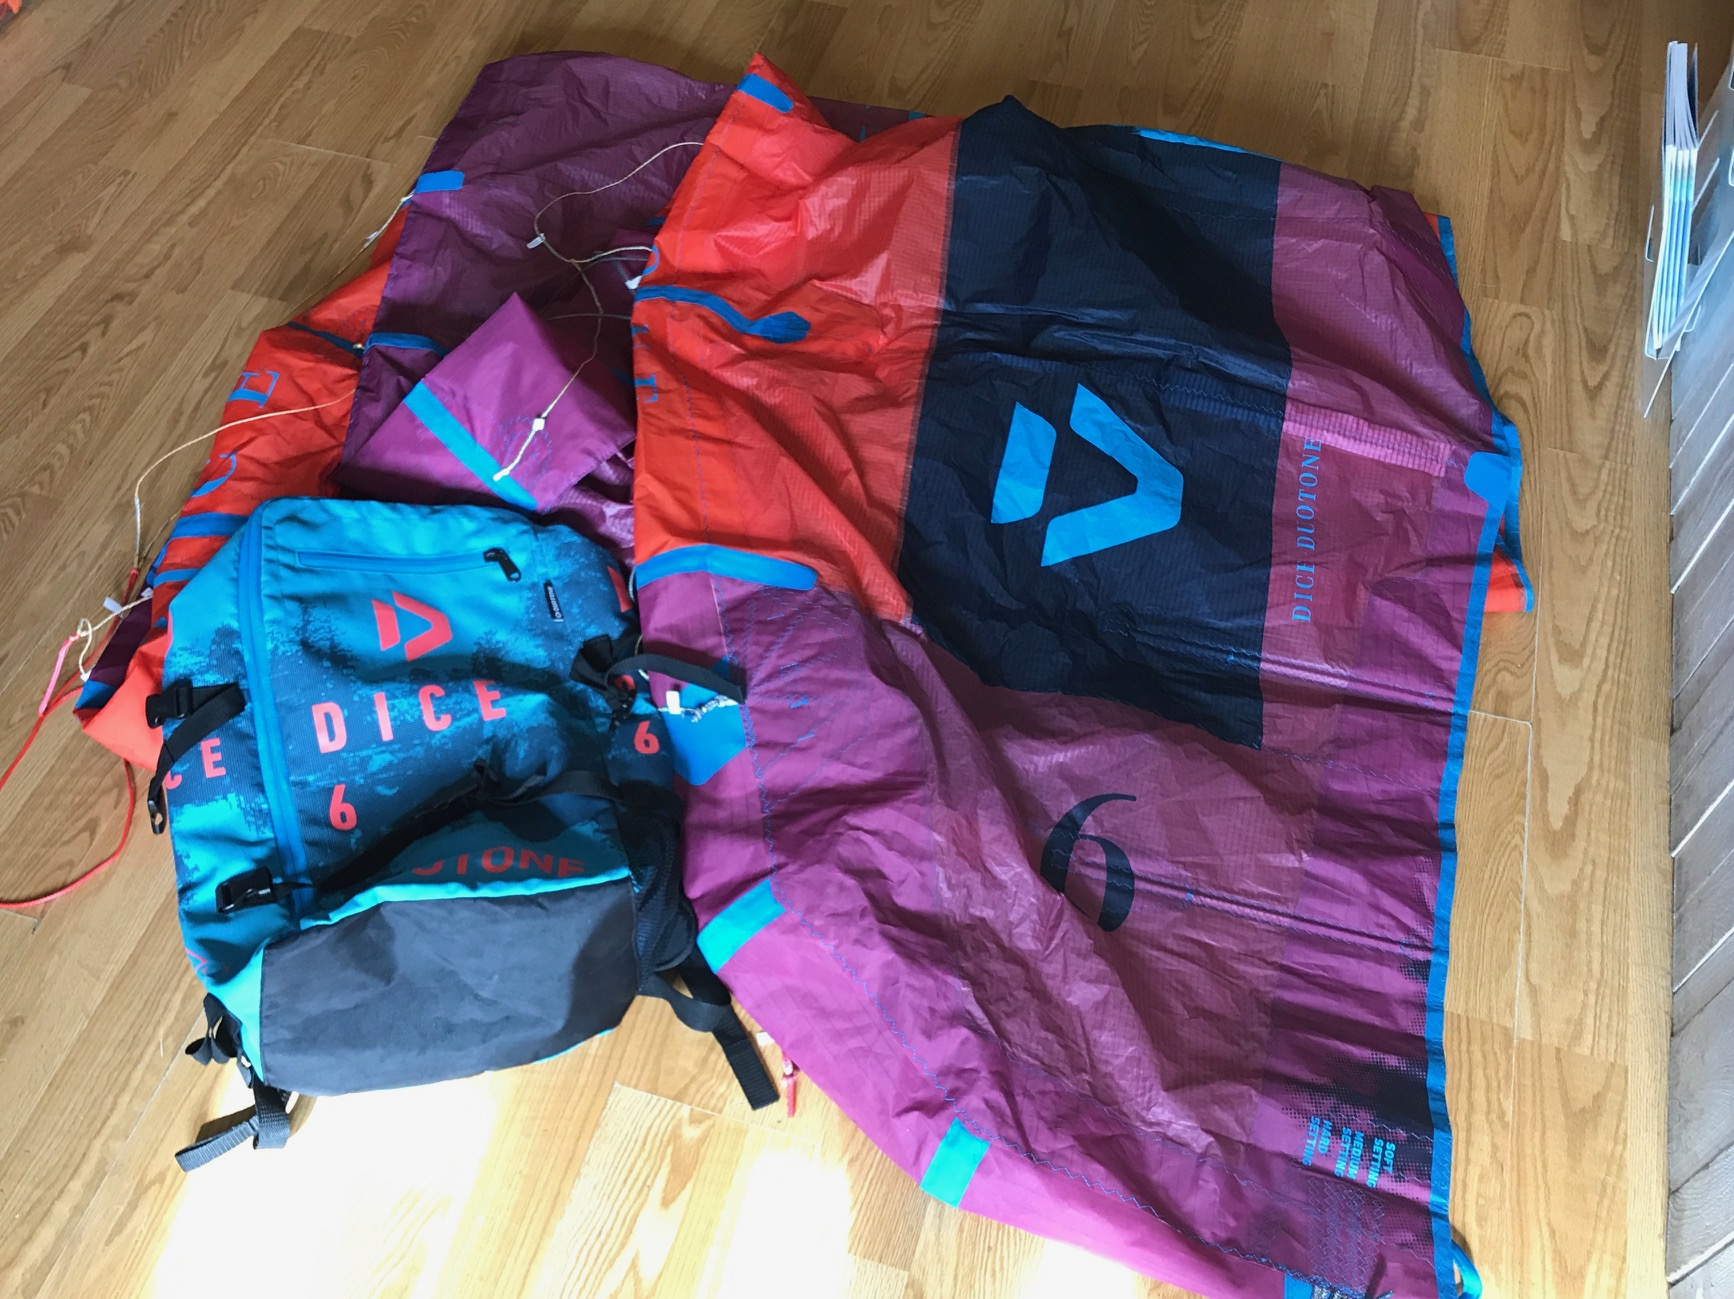 S/H Duotone Dice 6m Kite Only